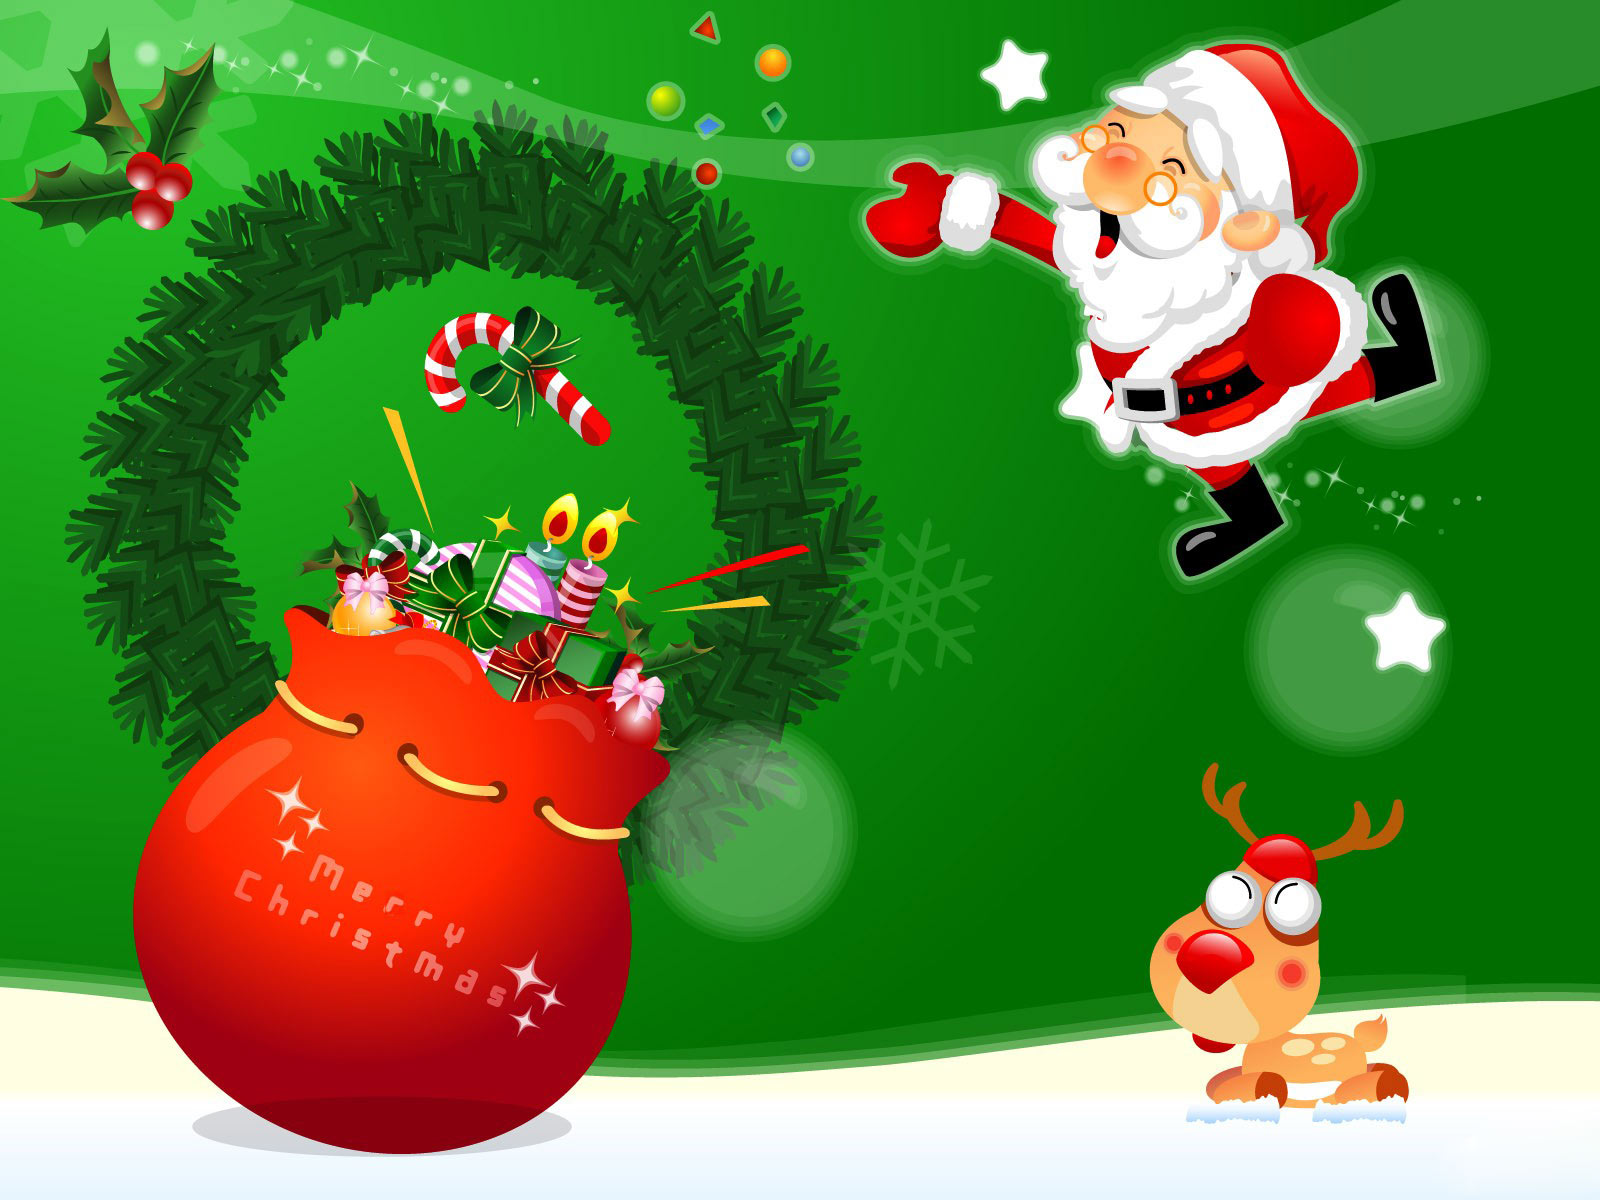 christmas wallpaper download merry - photo #27